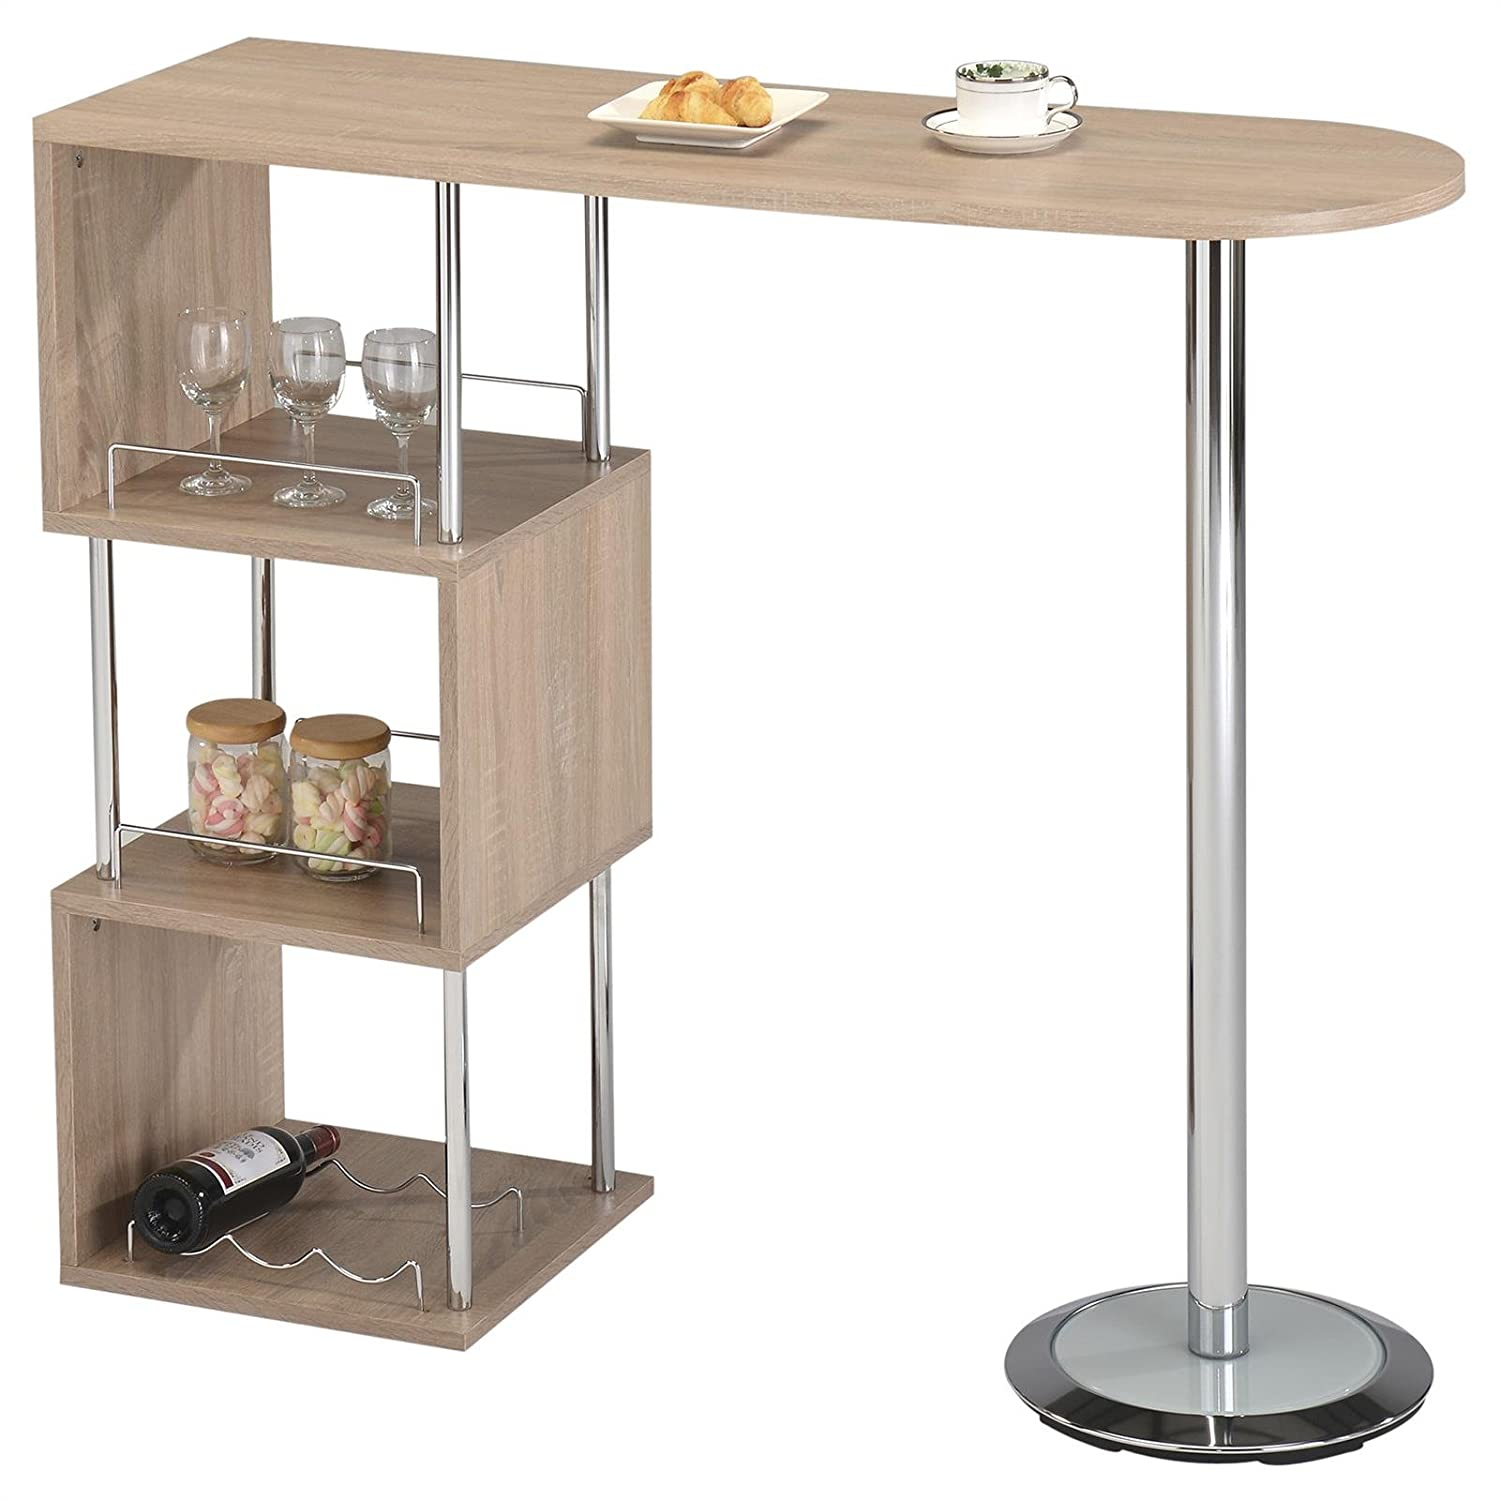 Meuble bar maison du monde free resto auto passion hyper - Amazon table de bar ...